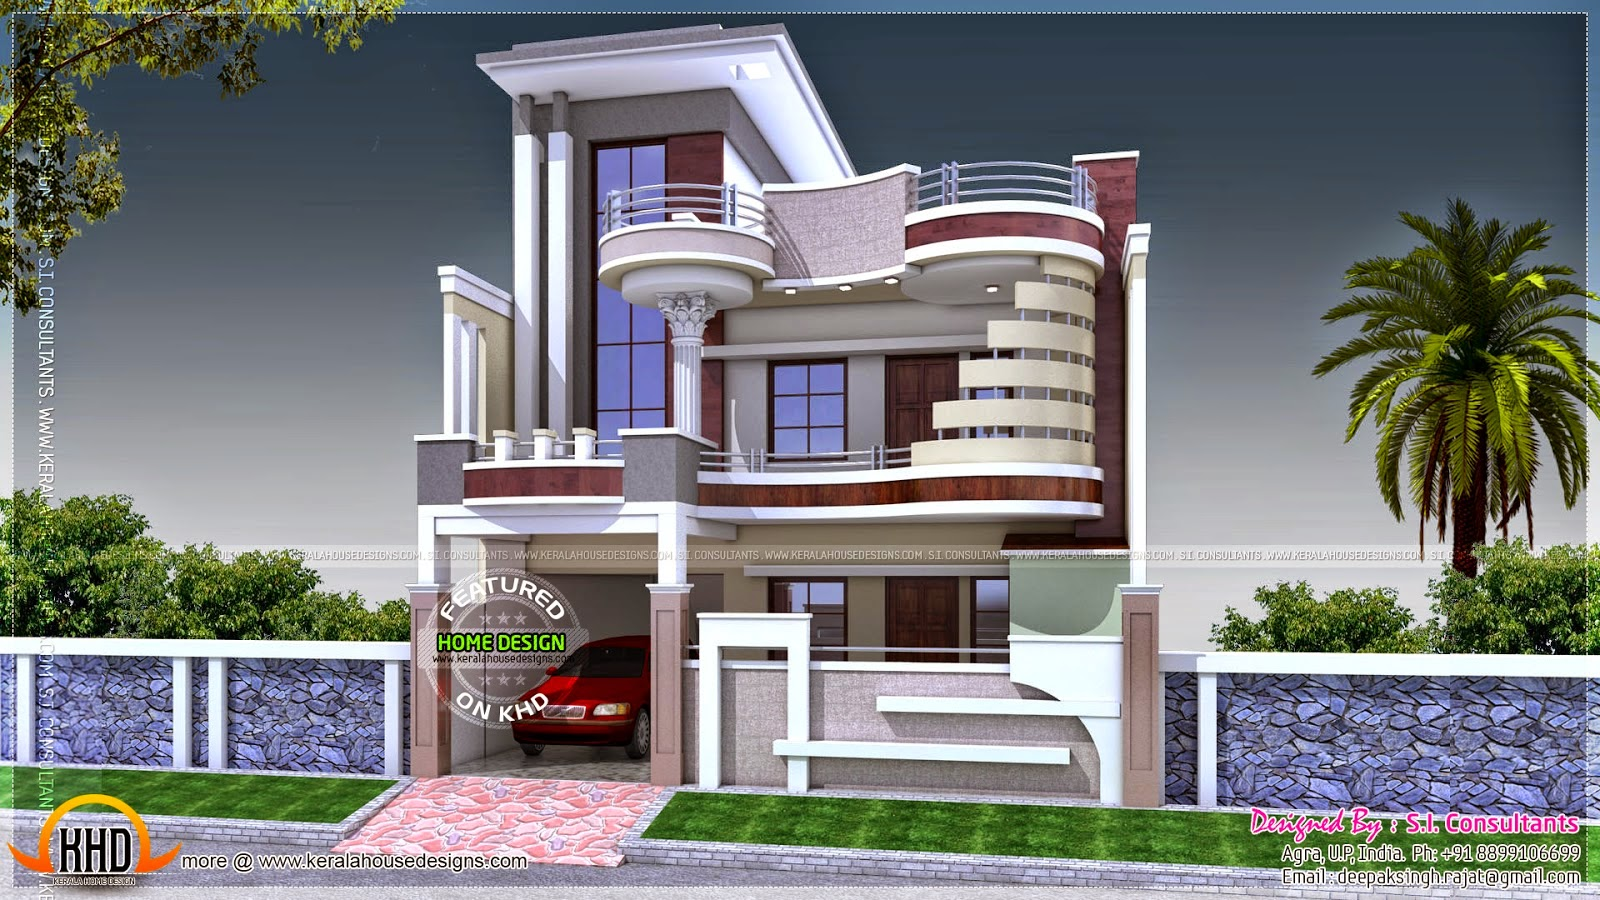 Tropicalizer indian house design for Indian house image